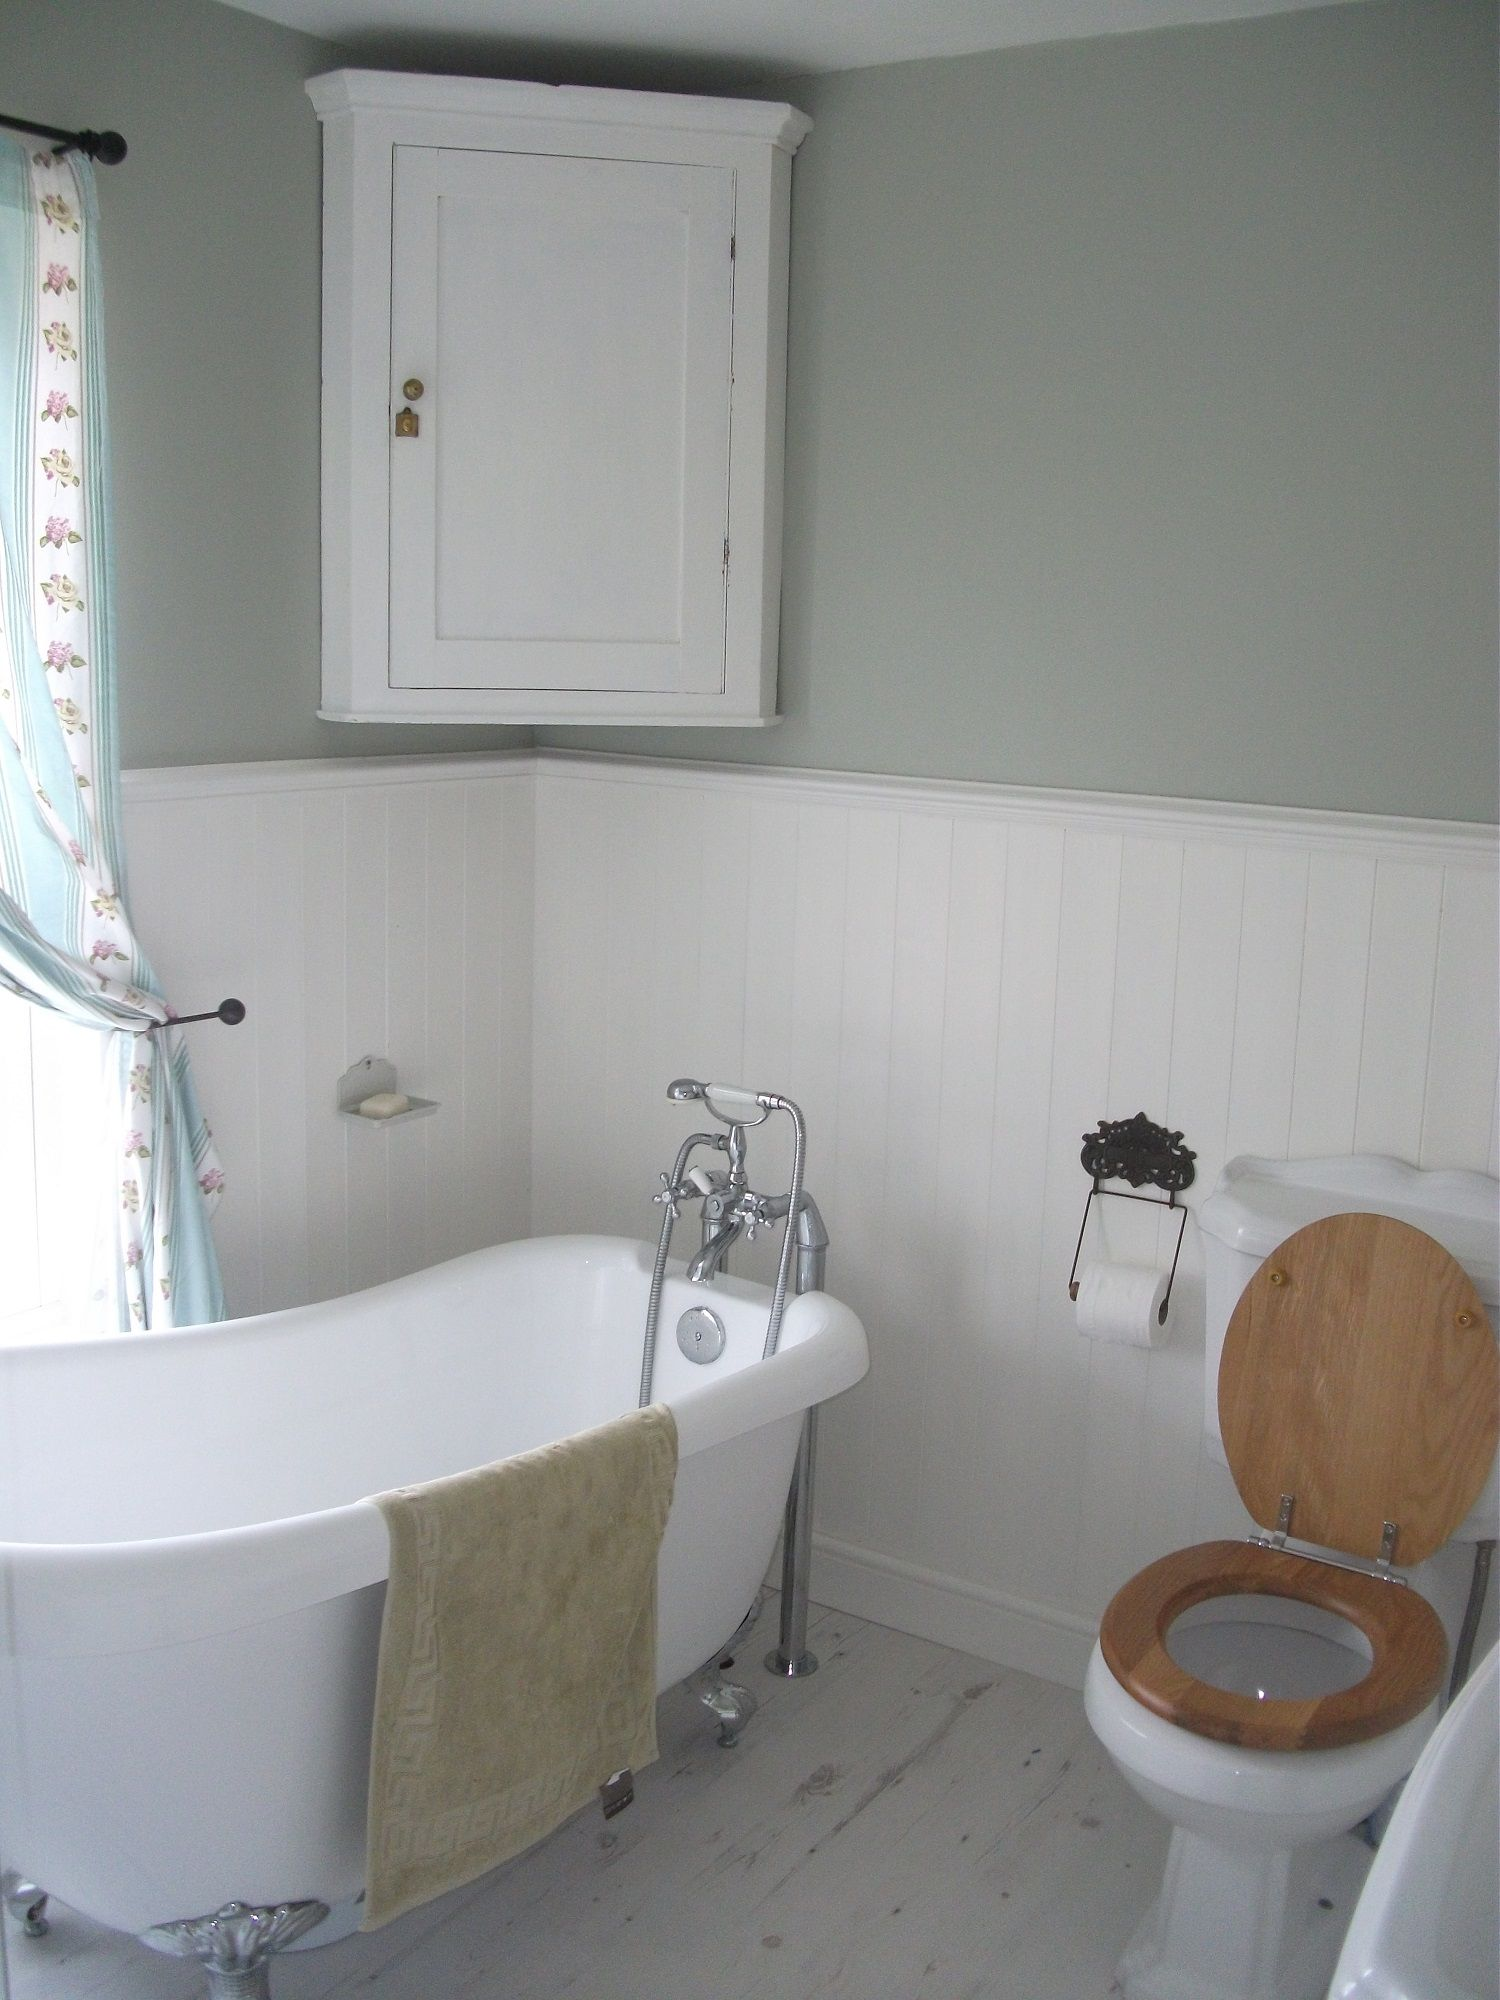 Our vintage style bathroom plete with slipper bath walls in Mizzle by Farrow and Ball